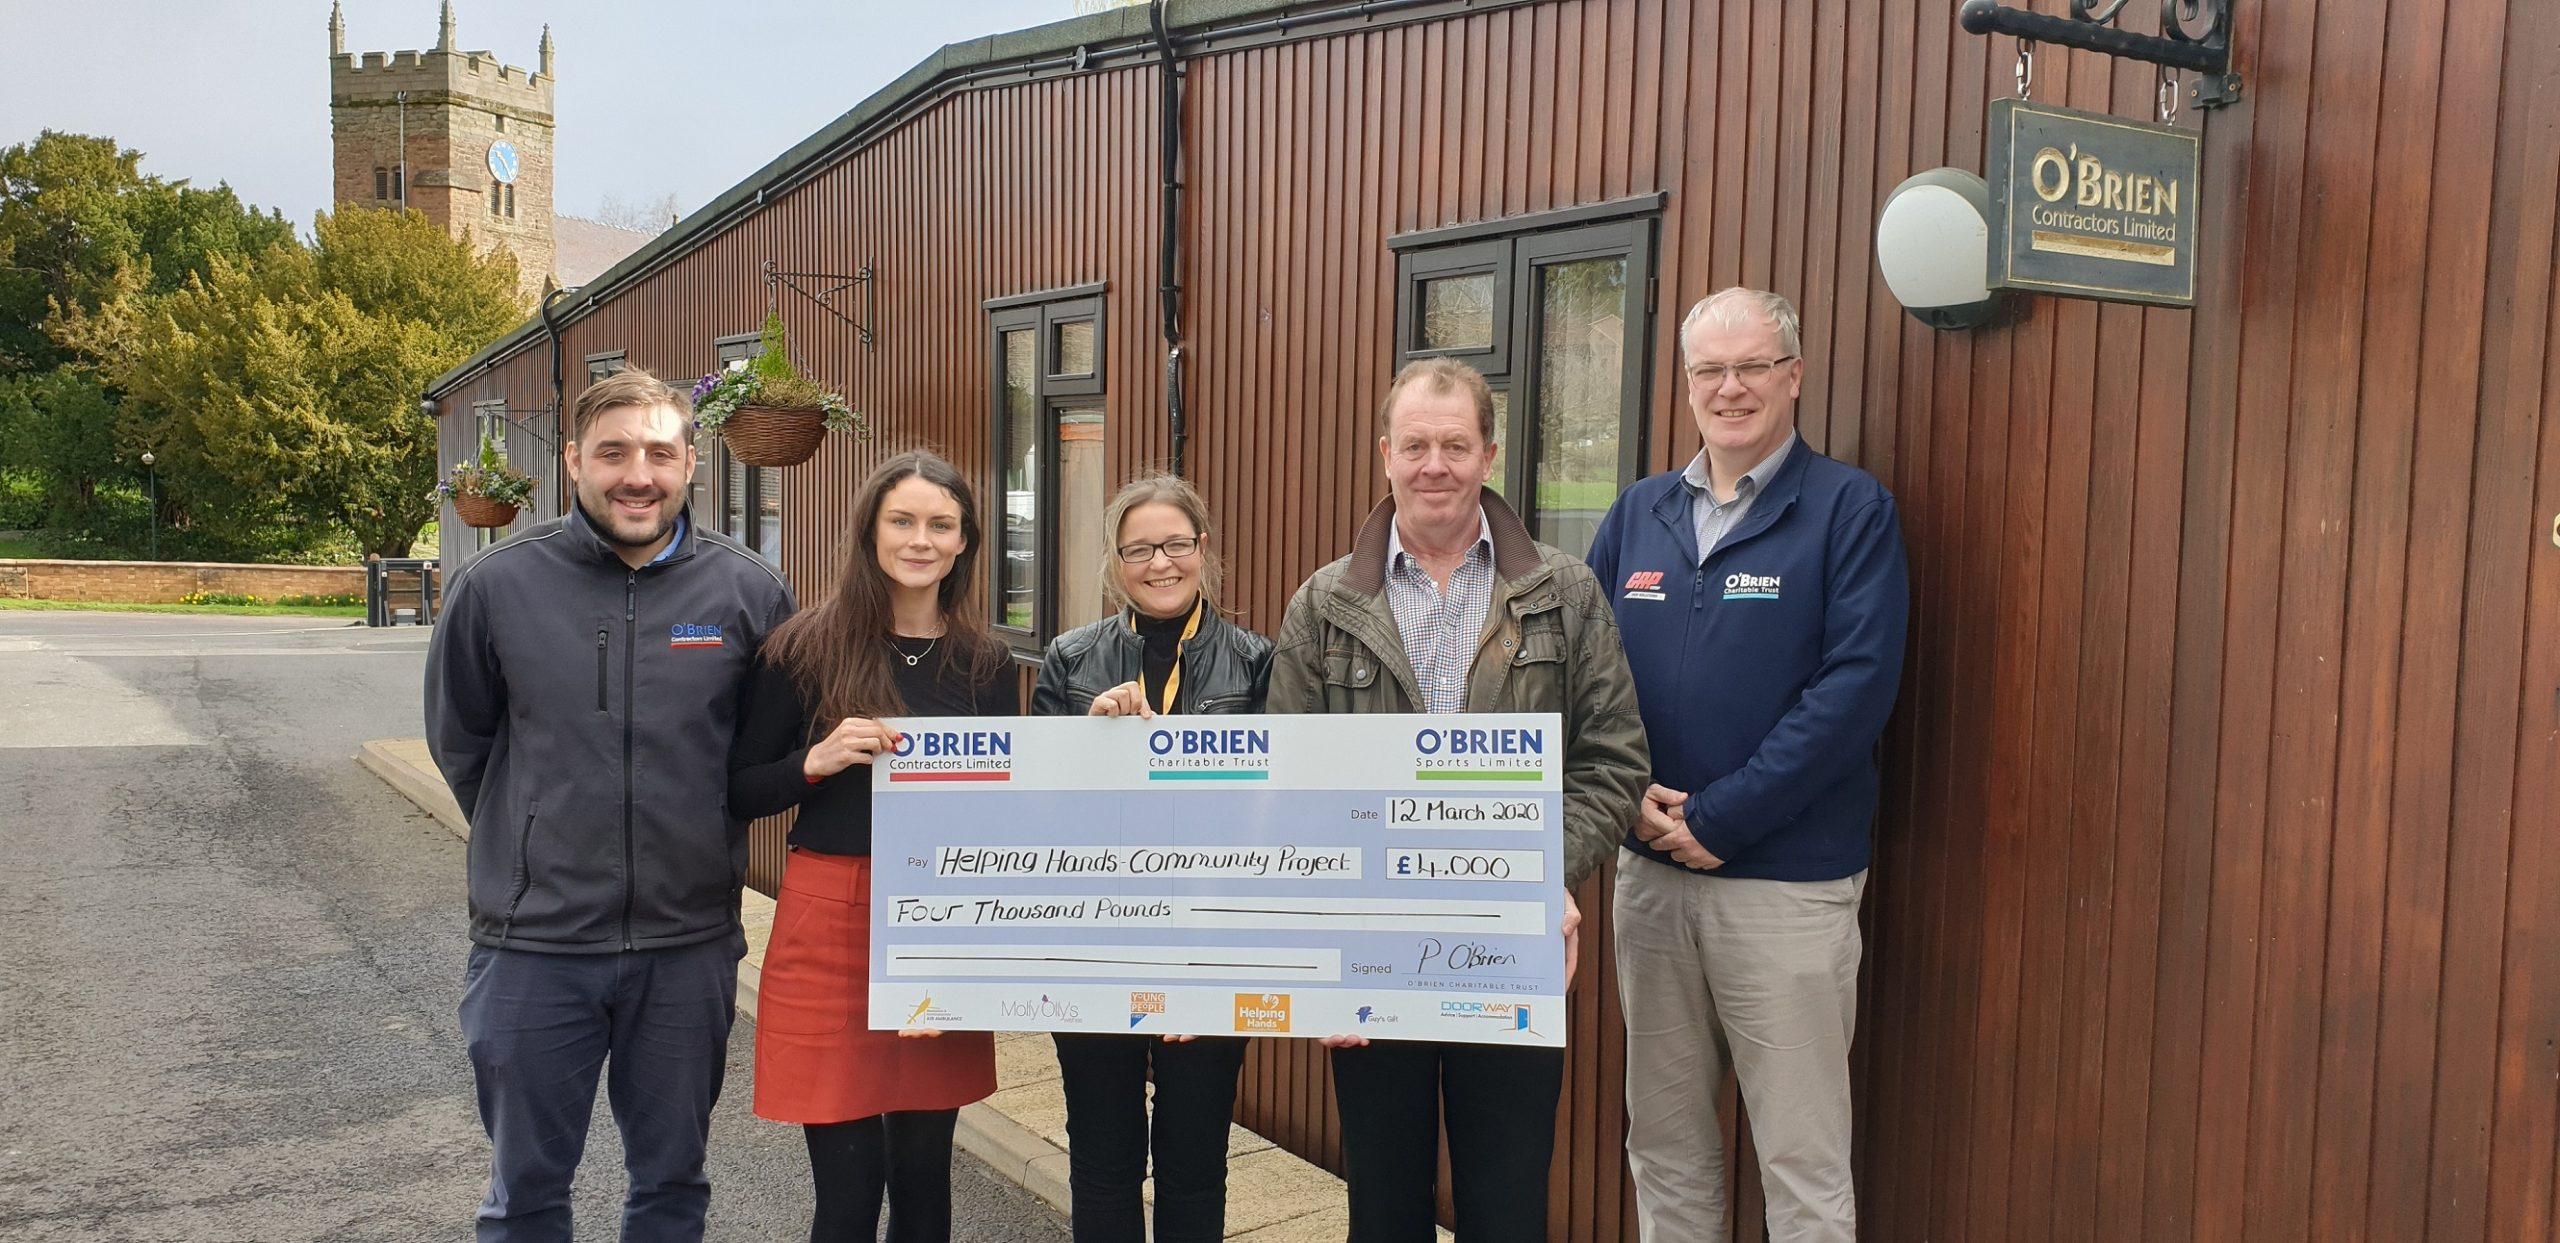 O'Brien Contractors Presents £4,000 to Helping Hands Community Project